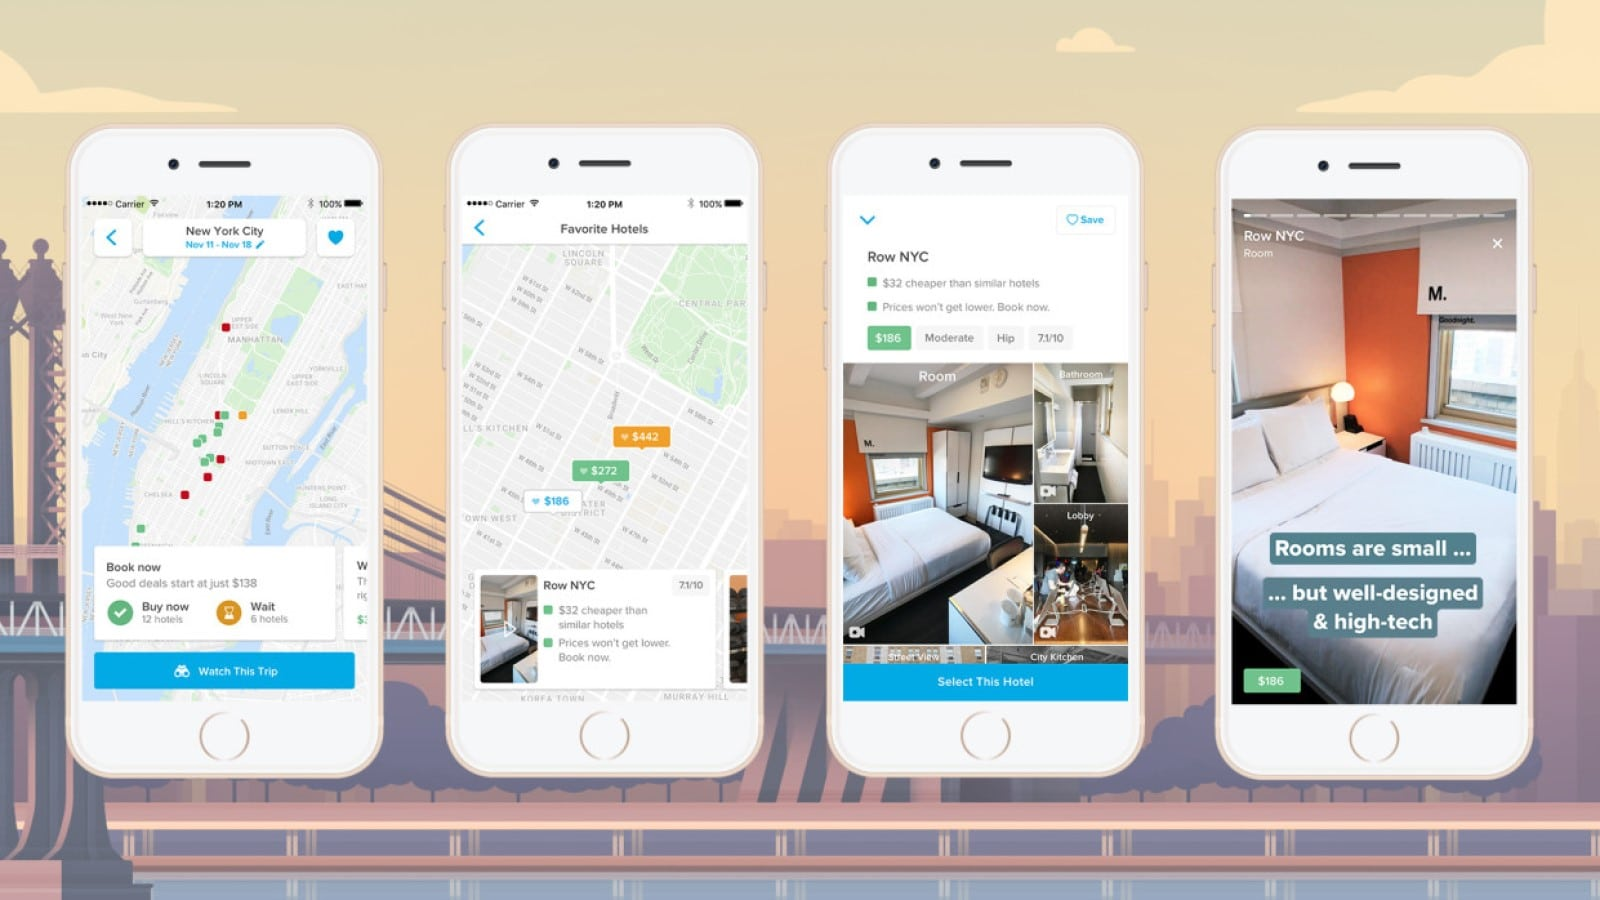 screenshots of hopper app showing hotel price predictions